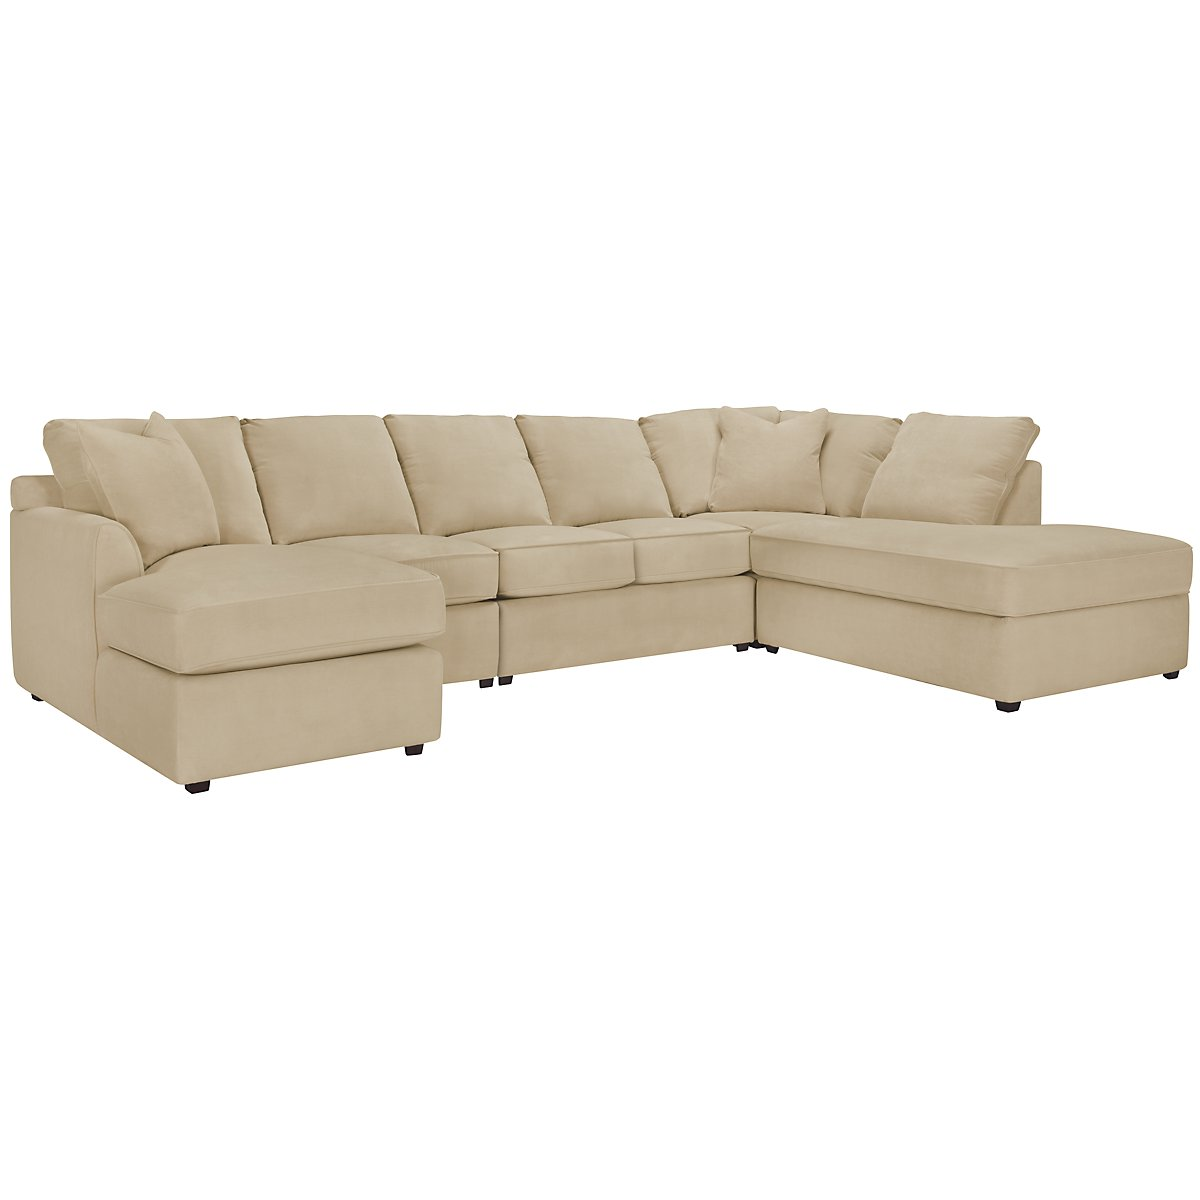 Express3 Light Beige Microfiber Large Right Bumper Sectional